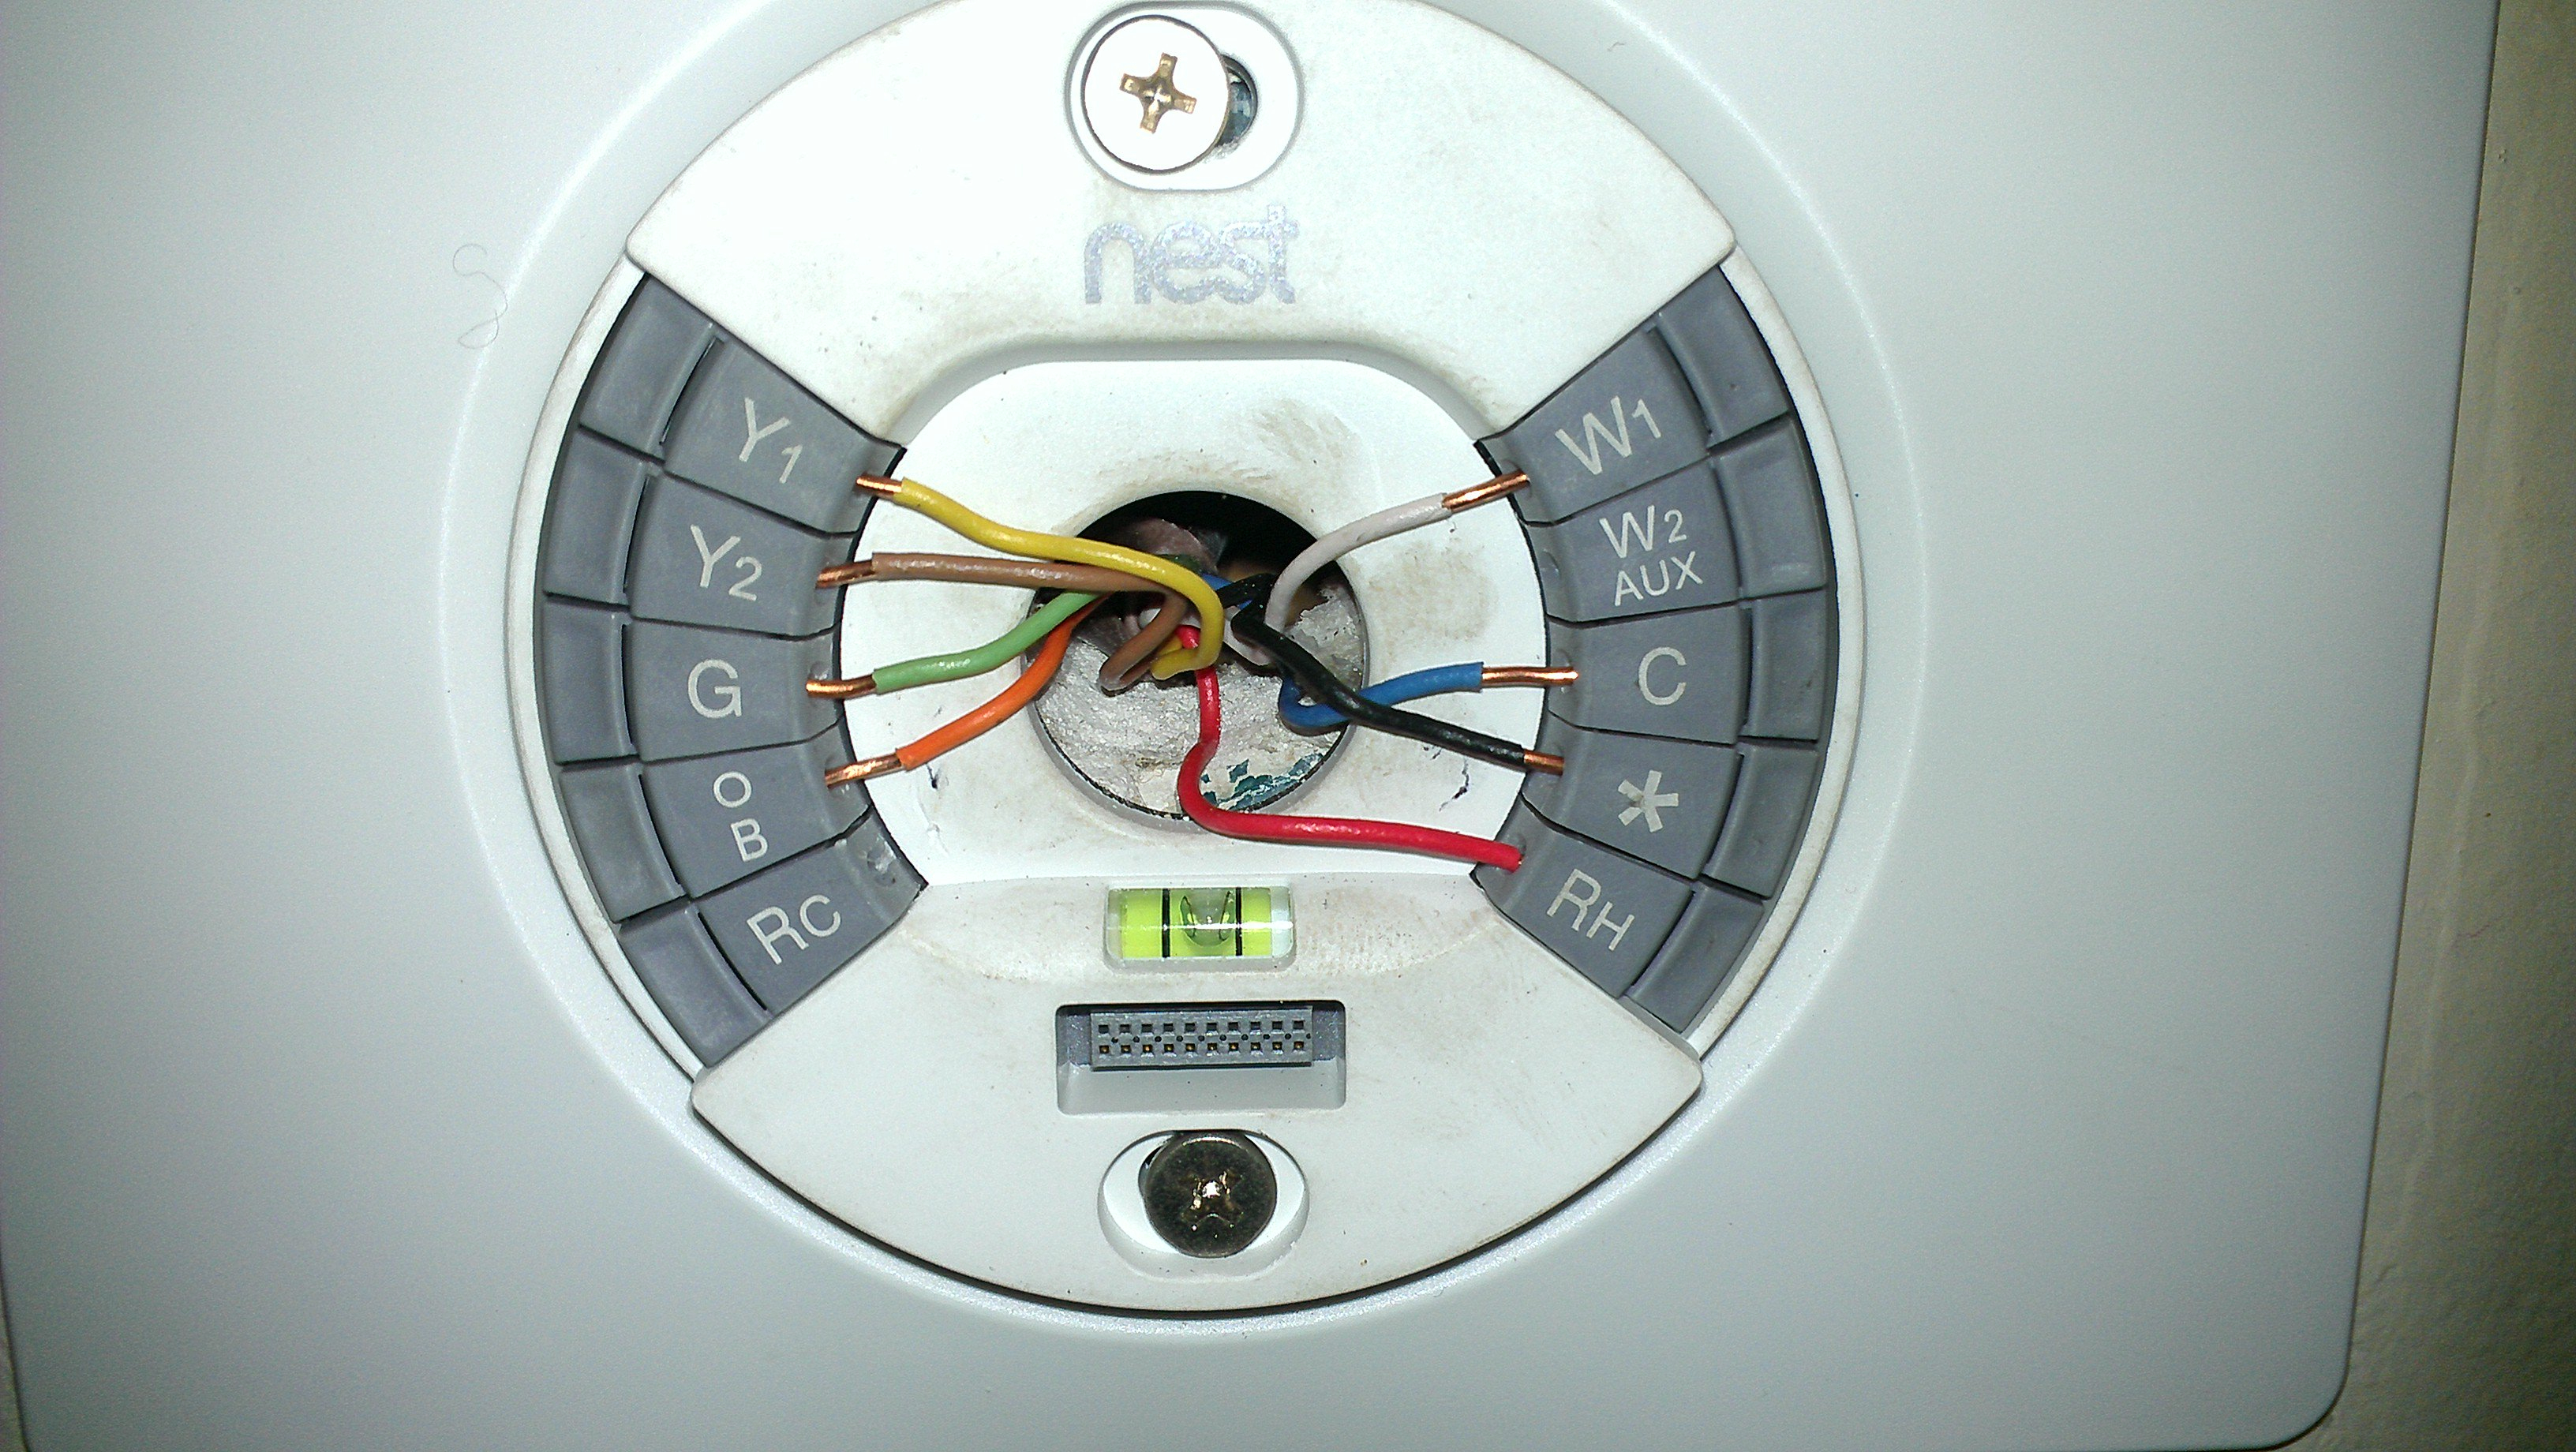 Diagram Nest Thermostat Wiring Diagram Heat Pump